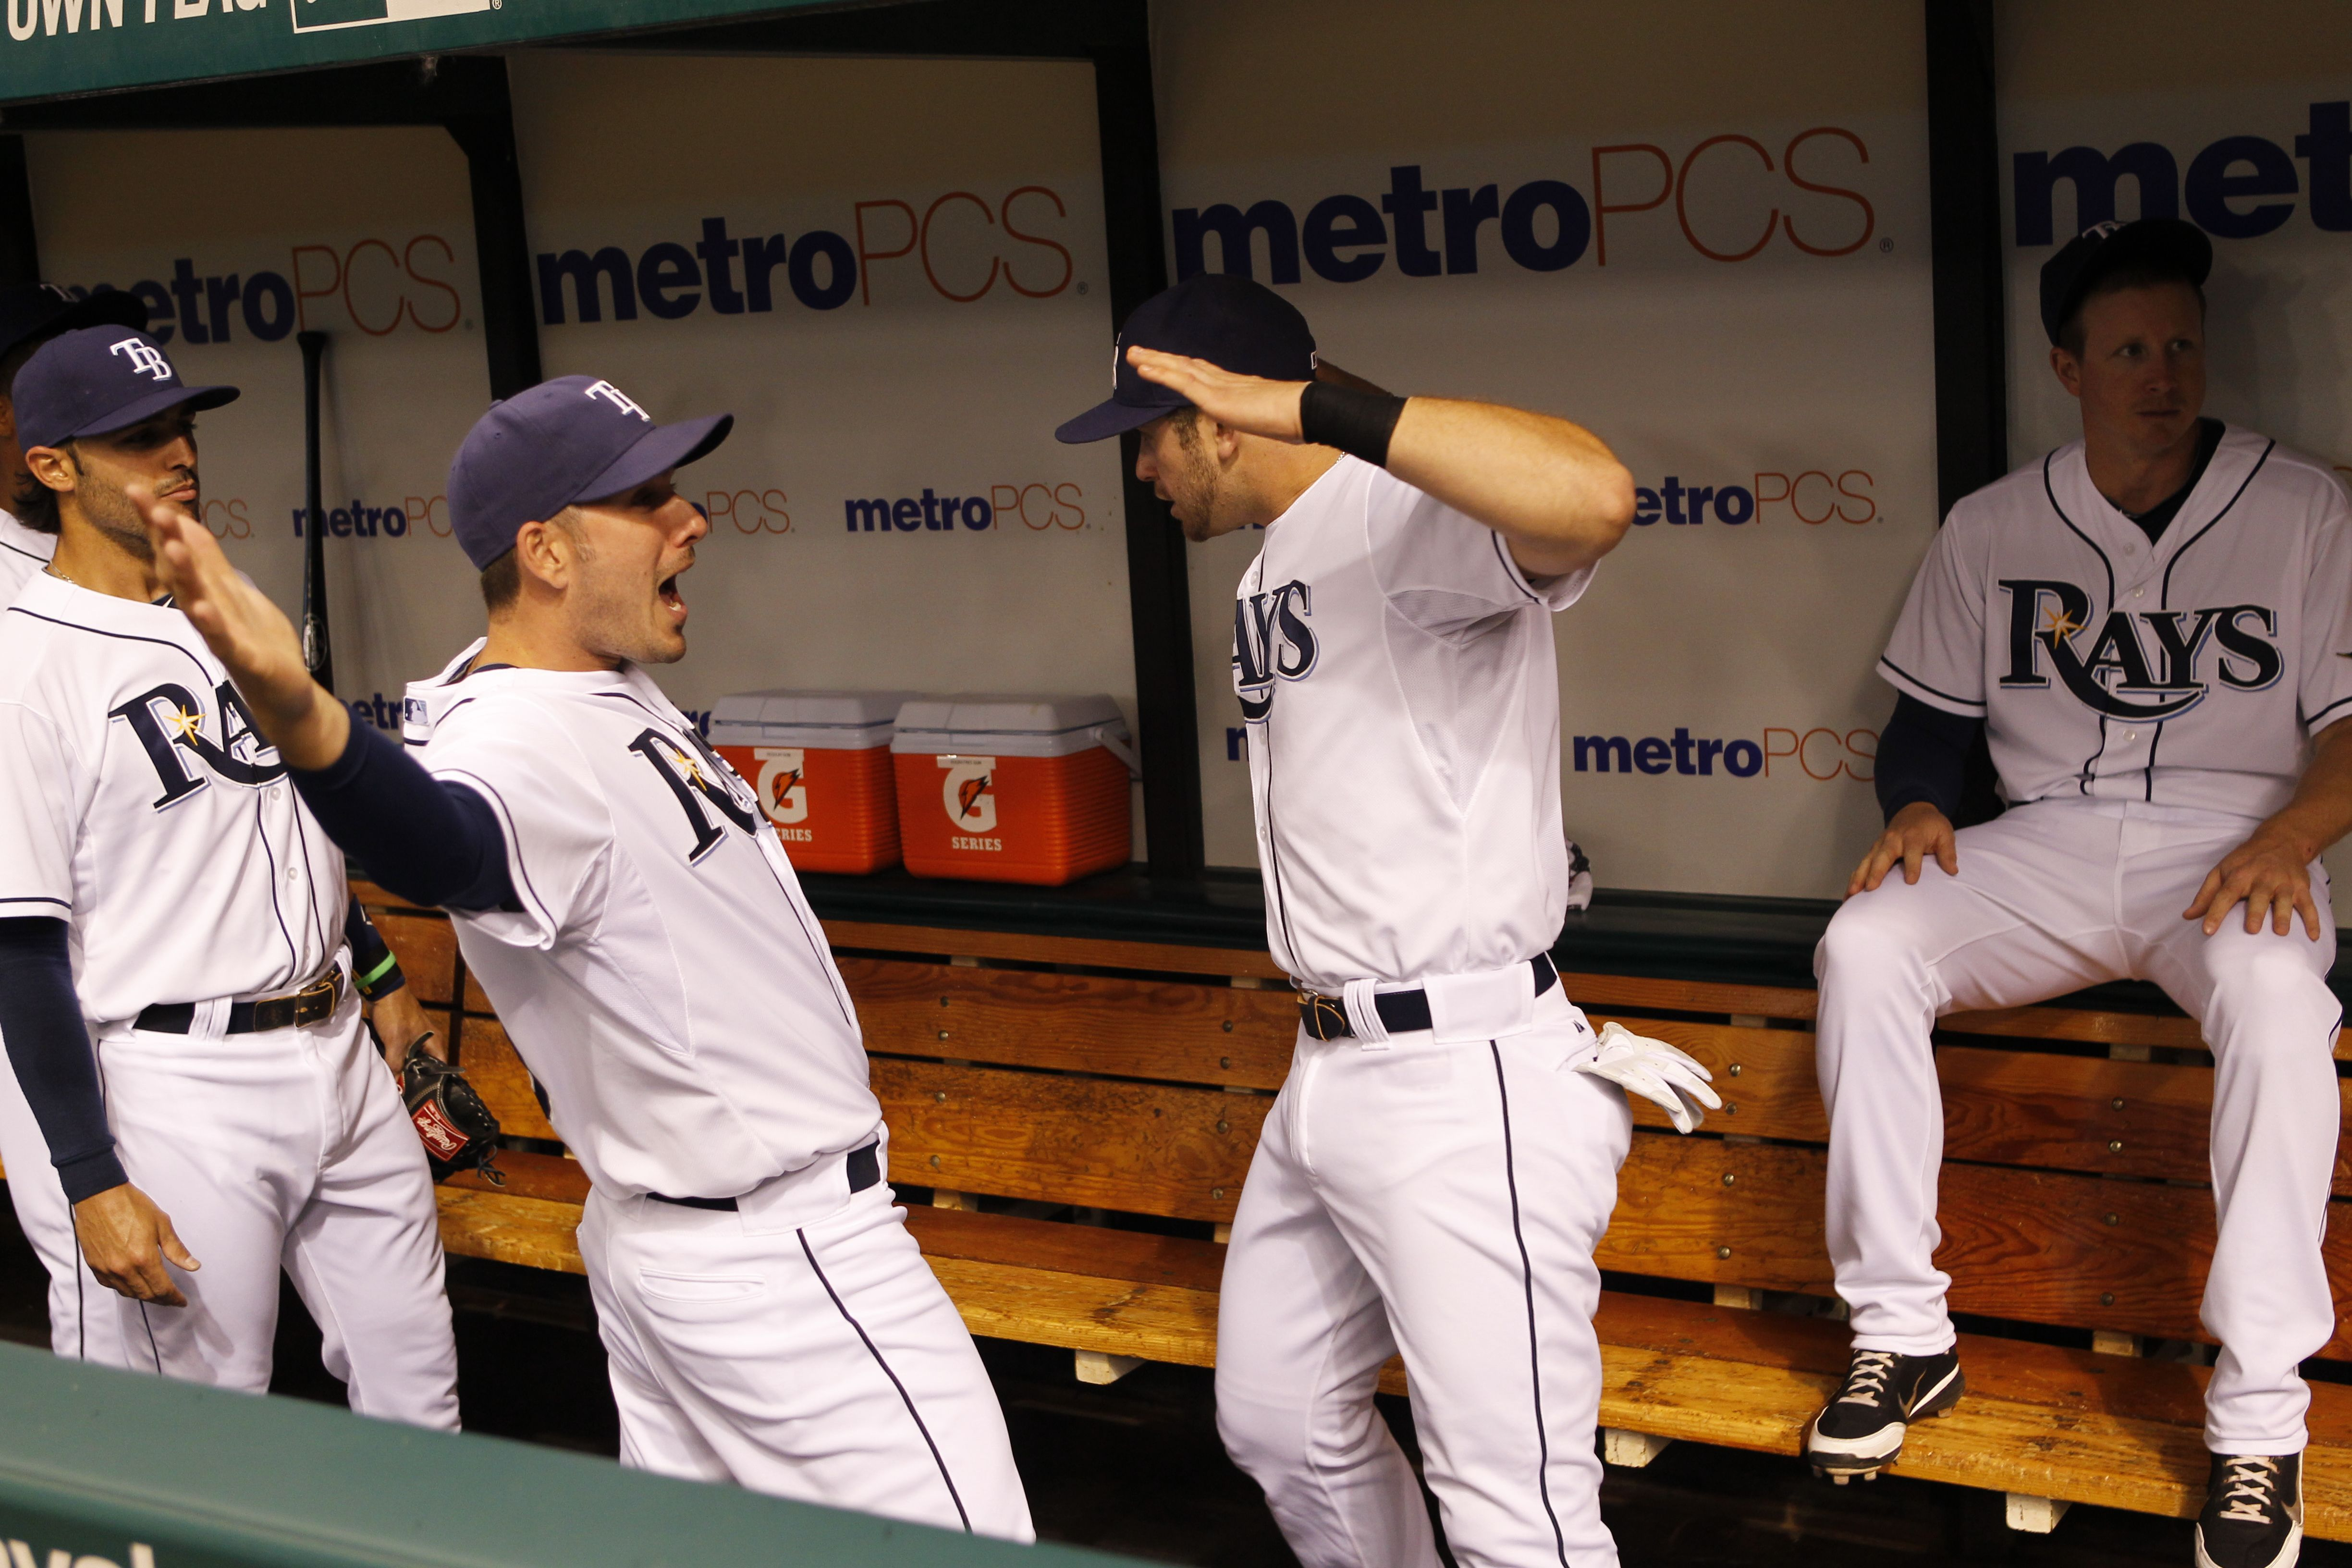 Evan Longoria Getting Pumped In The Dugout For The Game Tampa Bay Rays Rays Baseball Baseball Players